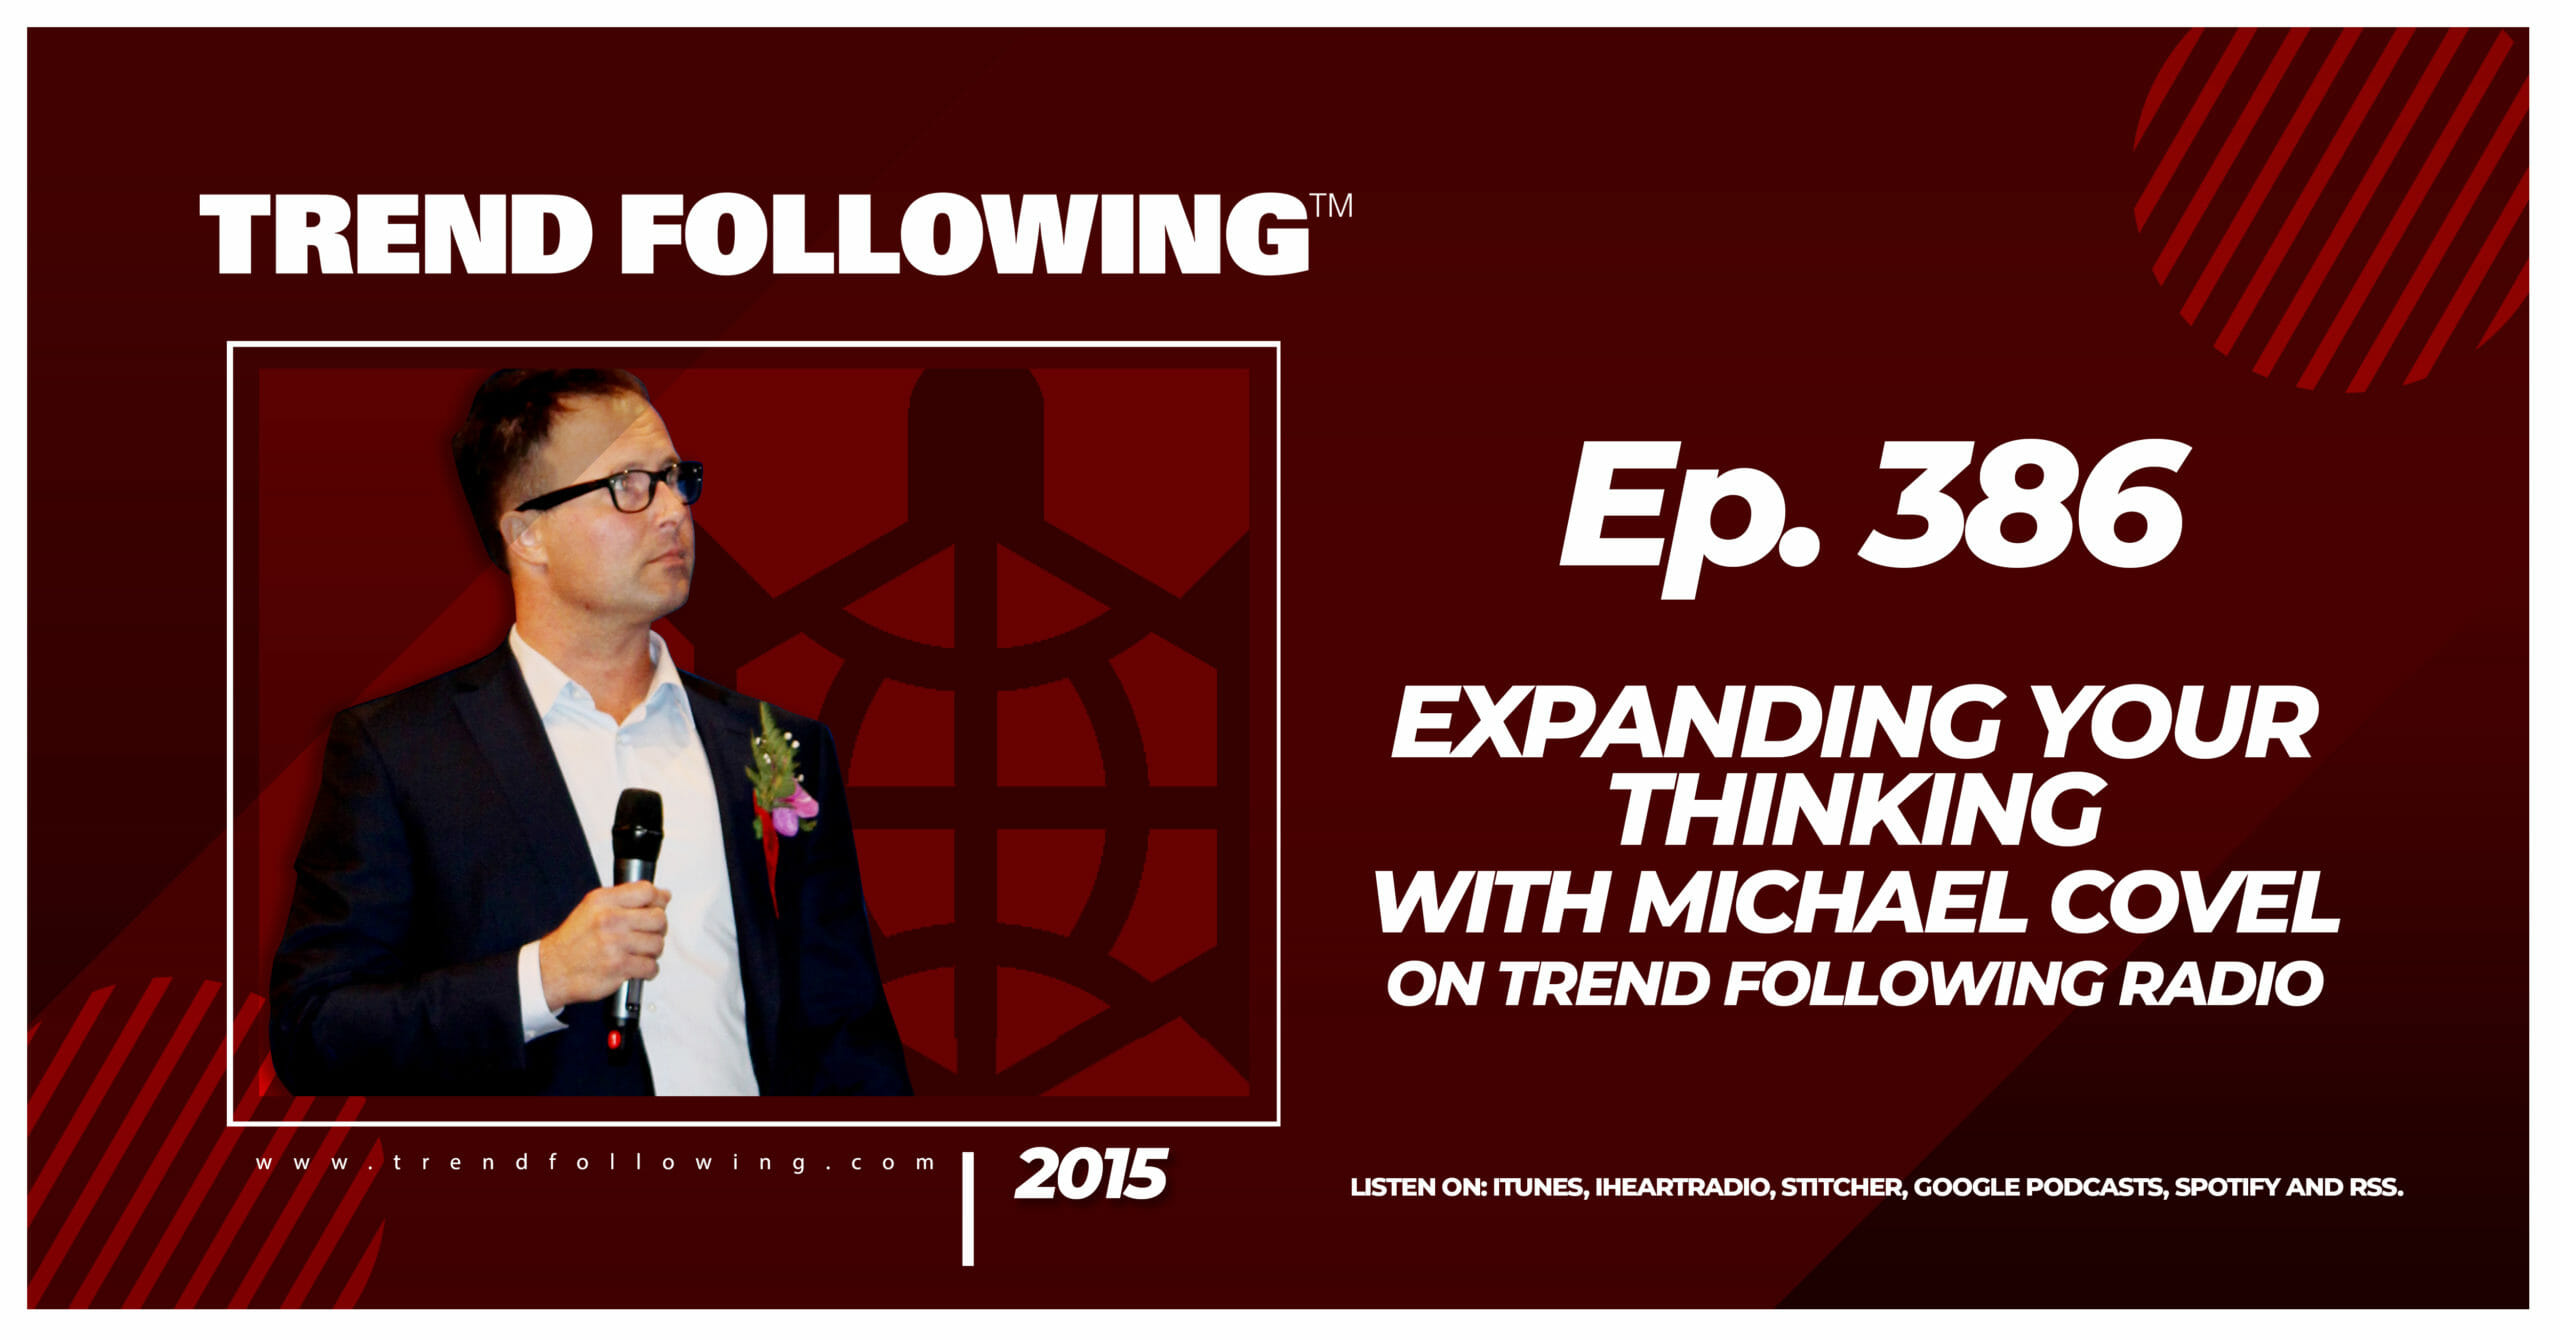 Expanding Your Thinking with Michael Covel on Trend Following Radio